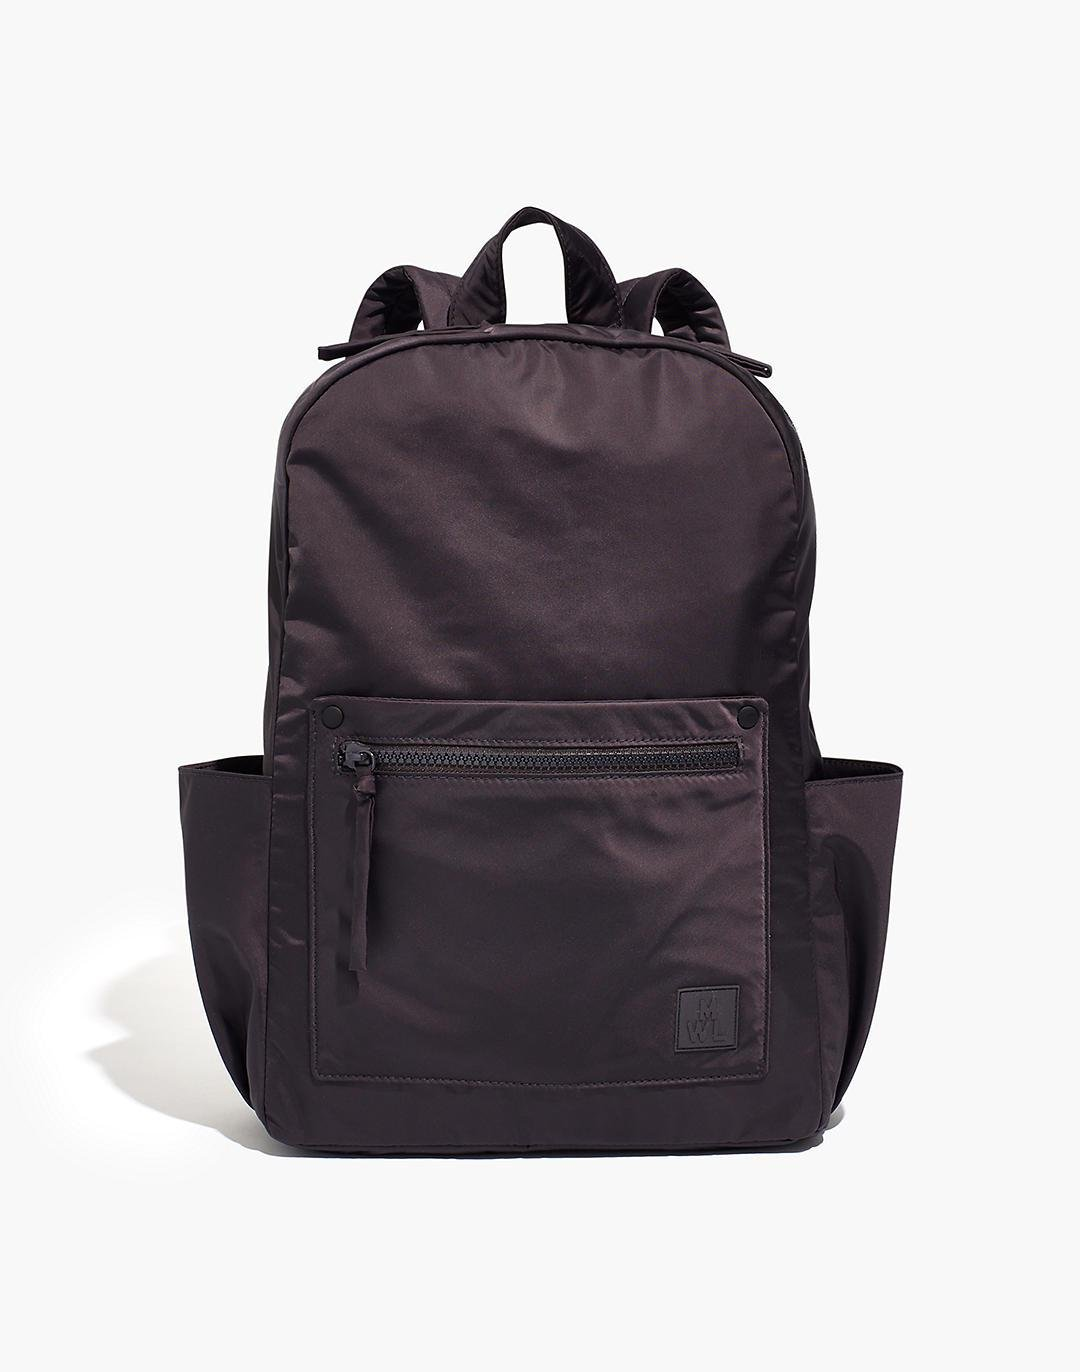 The (Re)sourced Backpack